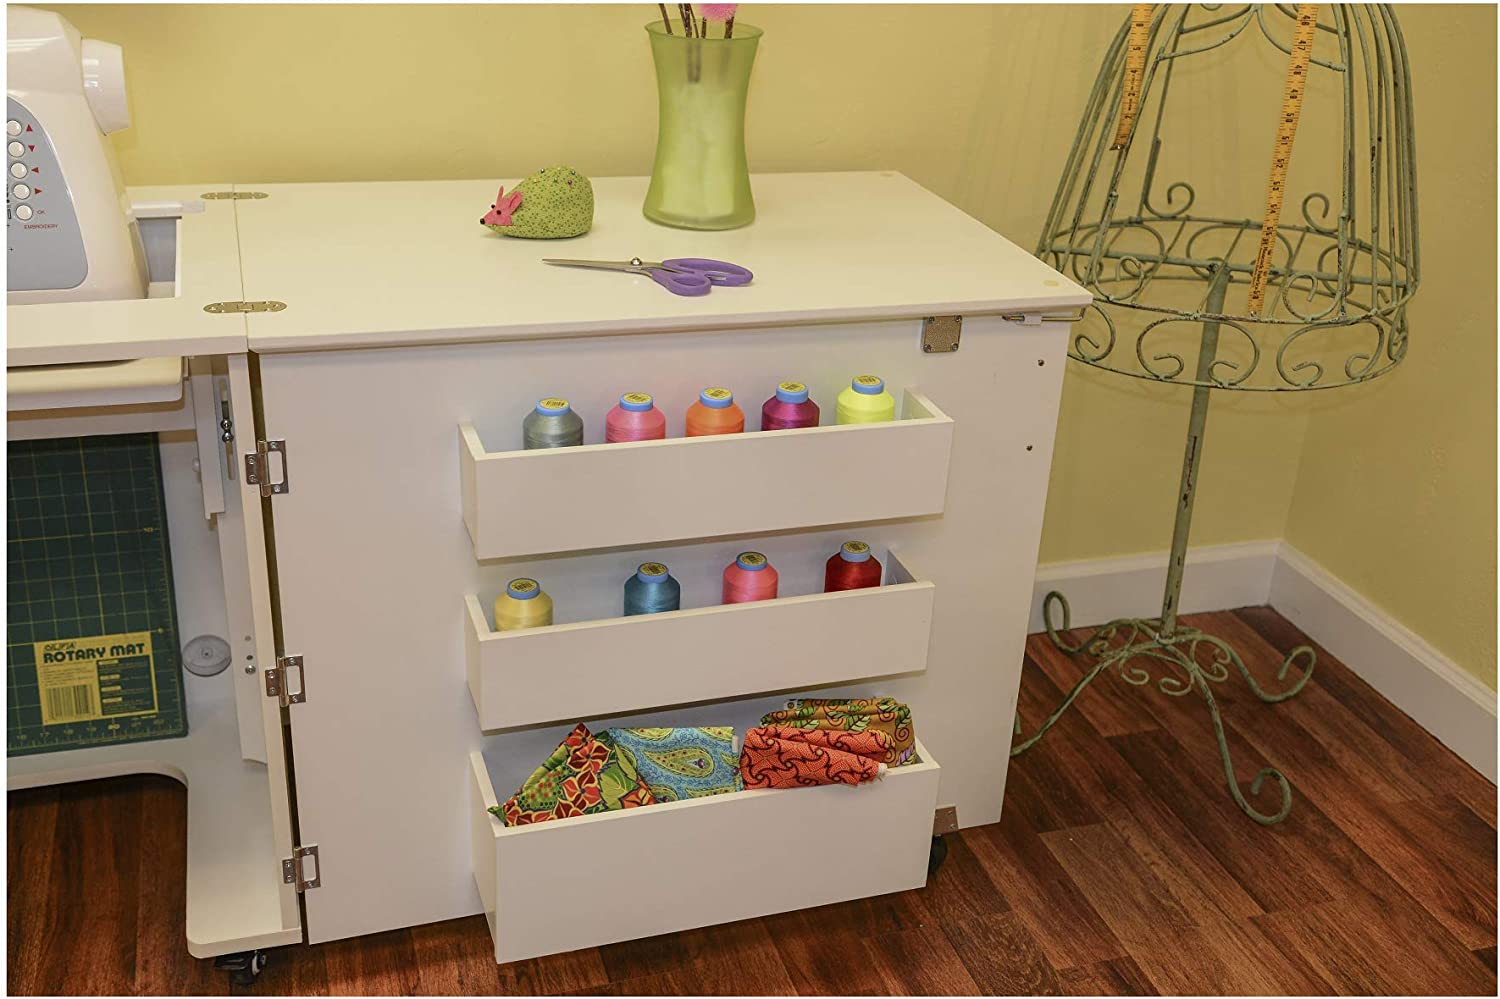 The Ultimate Sewing Cabinet Guide